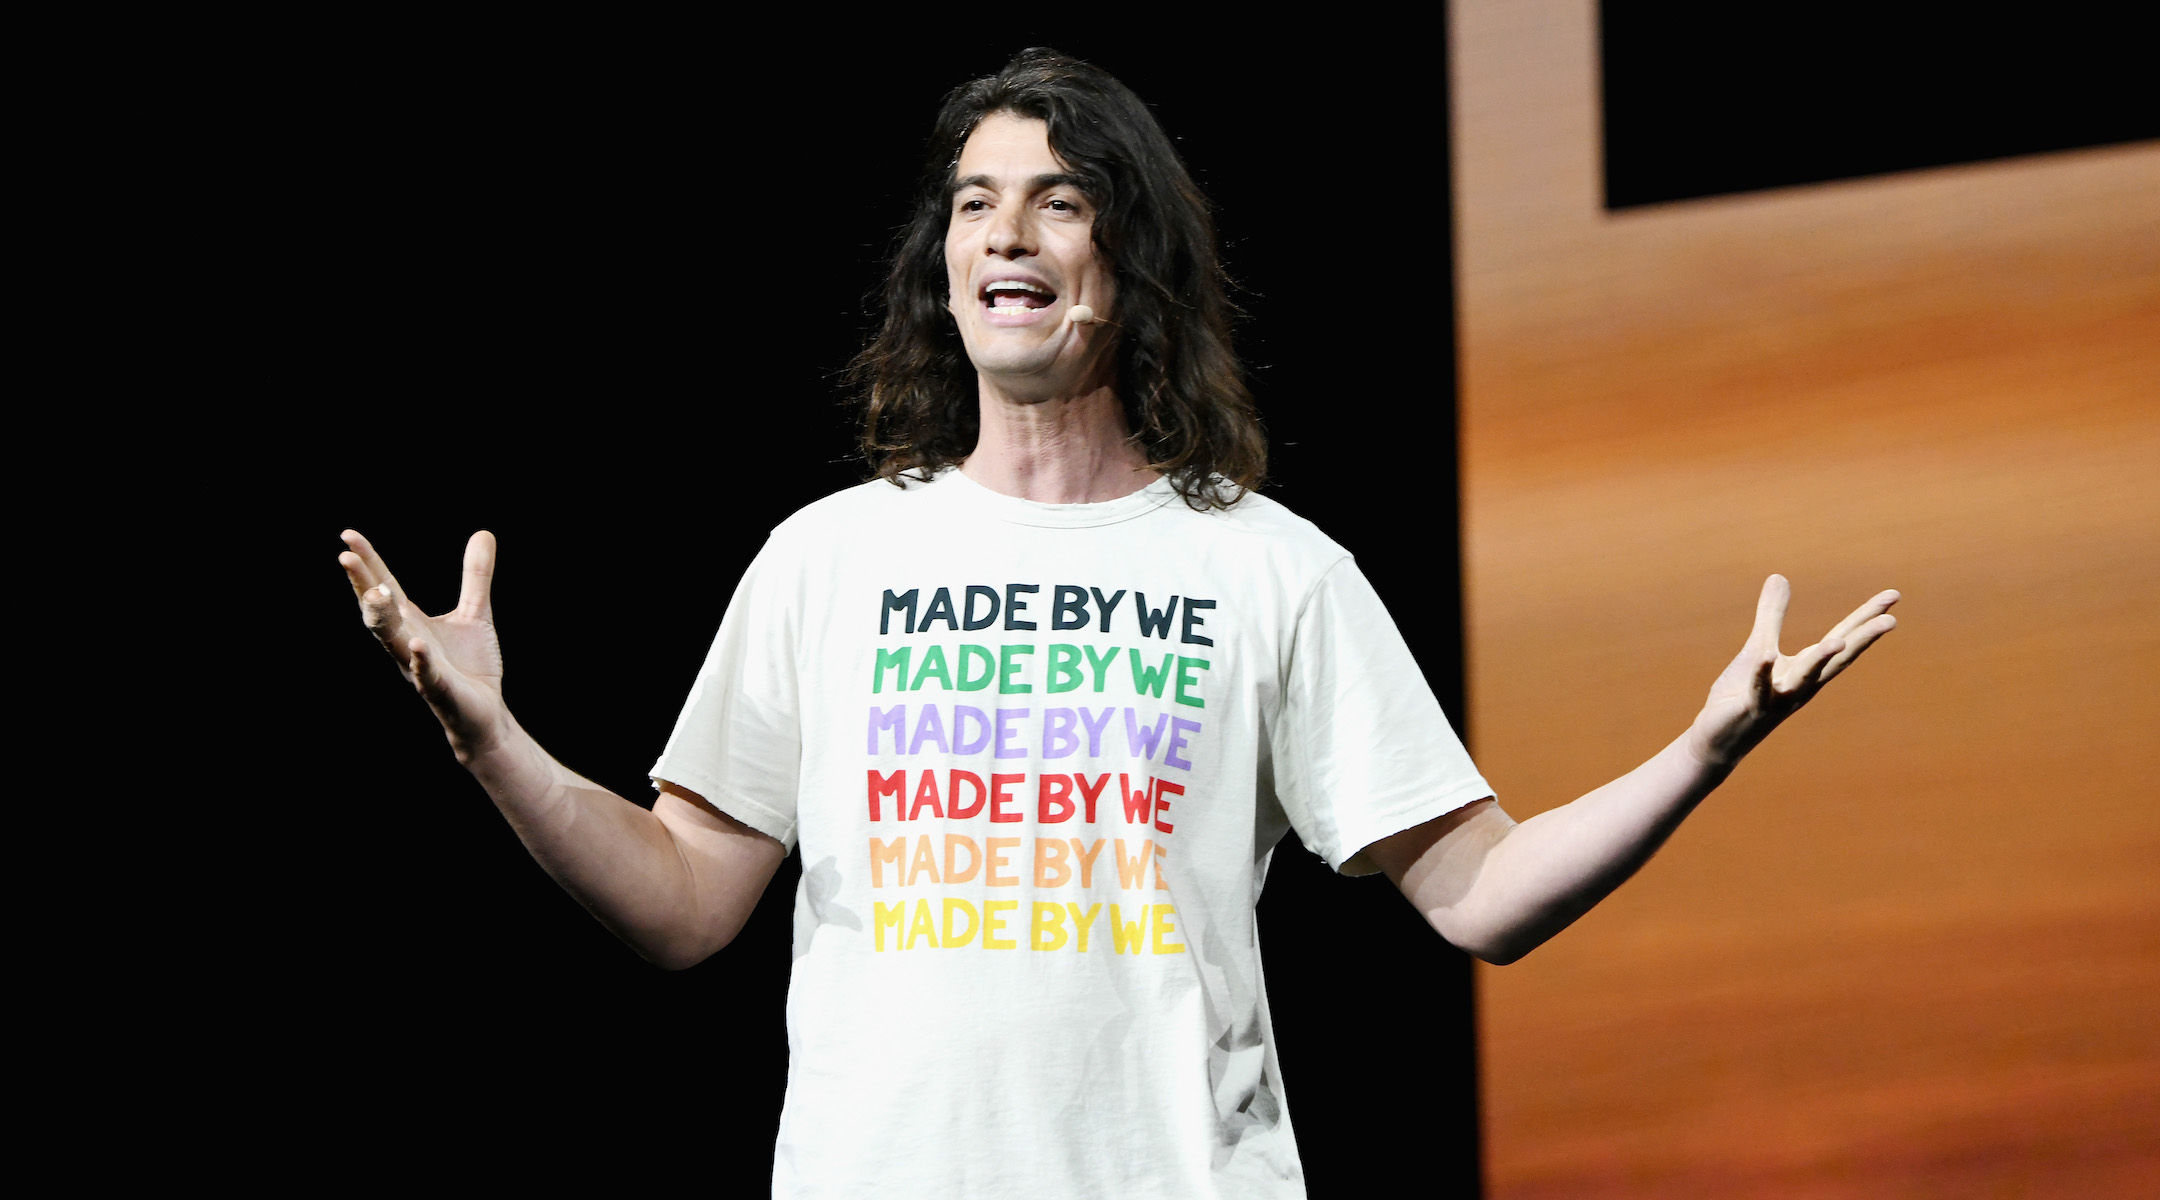 Adam Neumann speaks at a WeWork event at the Microsoft Theater in Los Angeles, Jan. 9, 2019. (Photo/JTA-Michael Kovac-Getty Images for WeWork)